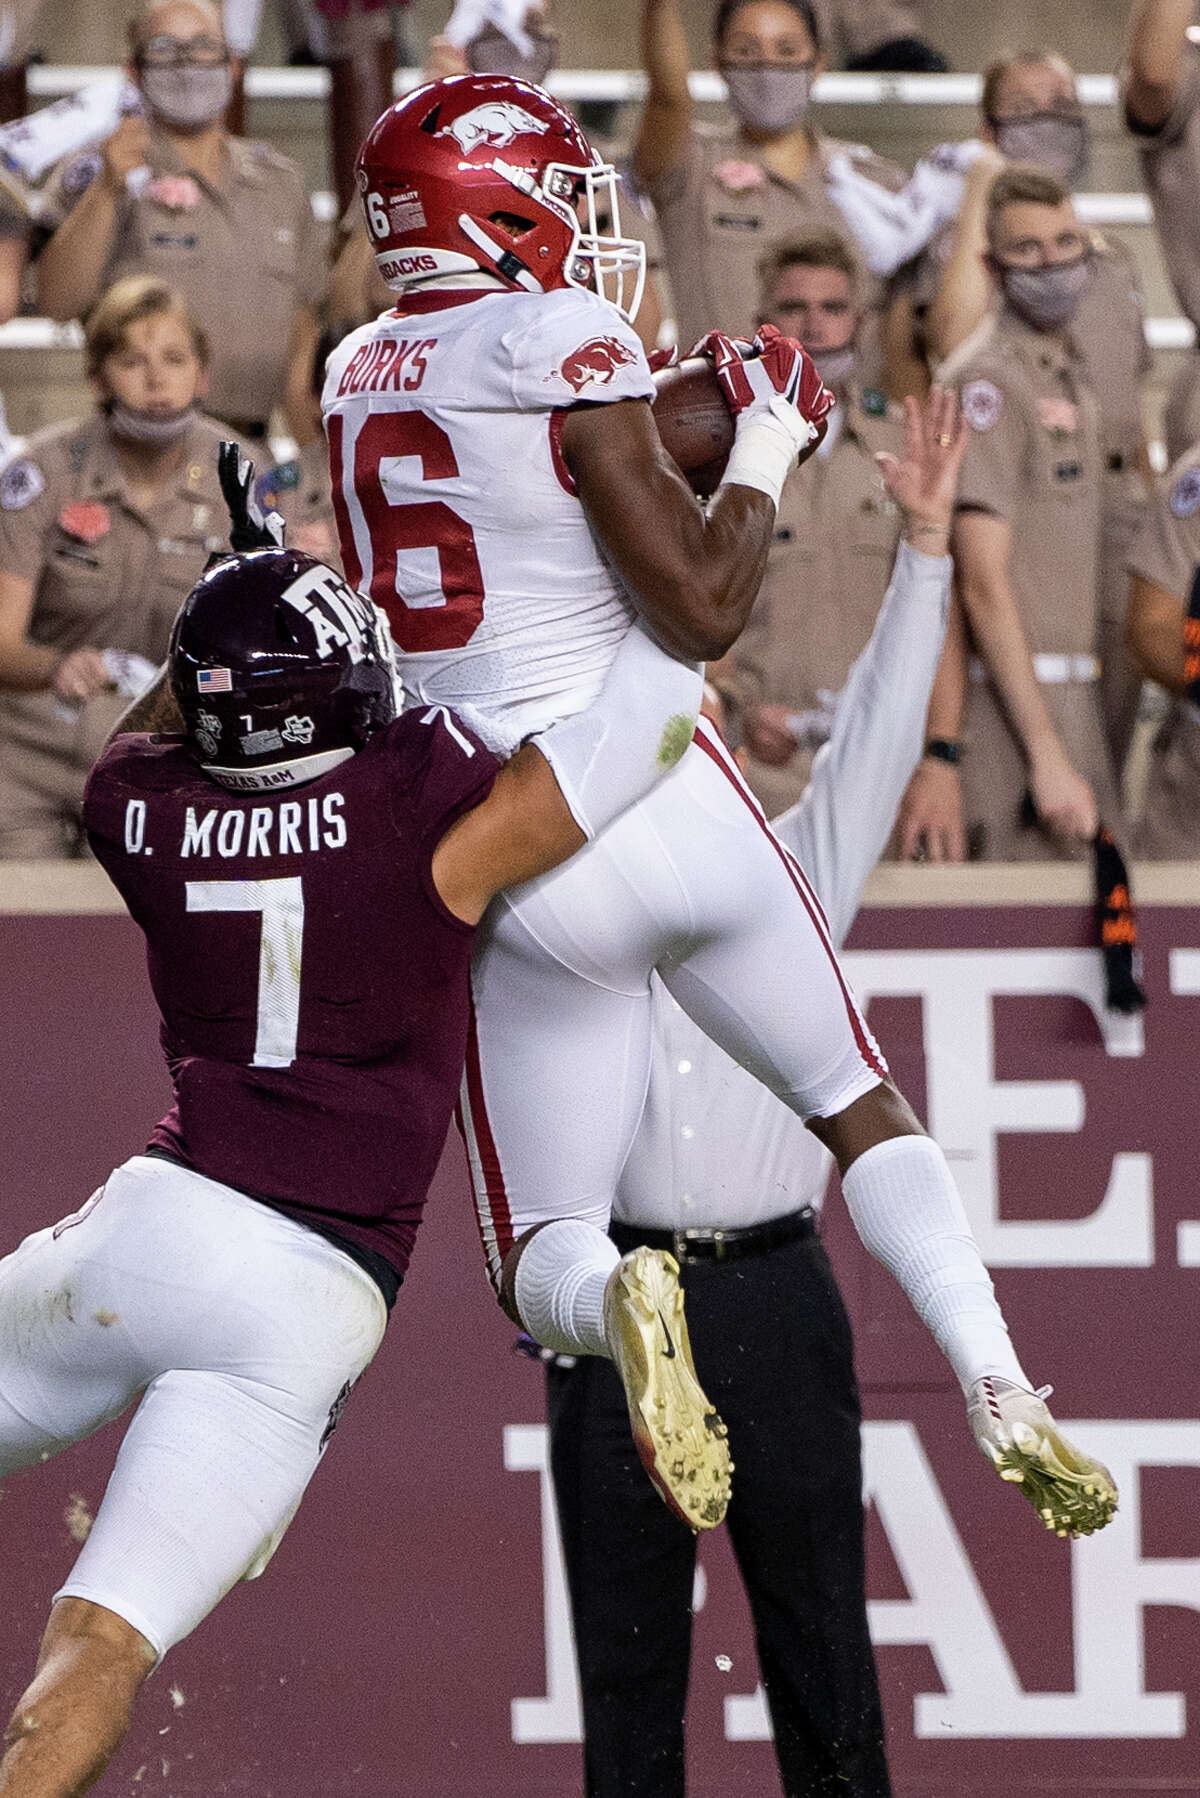 Arkansas wide receiver Treylon Burks (16) catches a pass for a touchdown while Texas A&M defensive back Devin Morris (7) defends during the first quarter of an NCAA college football game Saturday, Oct. 31, 2020, in College Station, Texas. (AP Photo/Sam Craft)